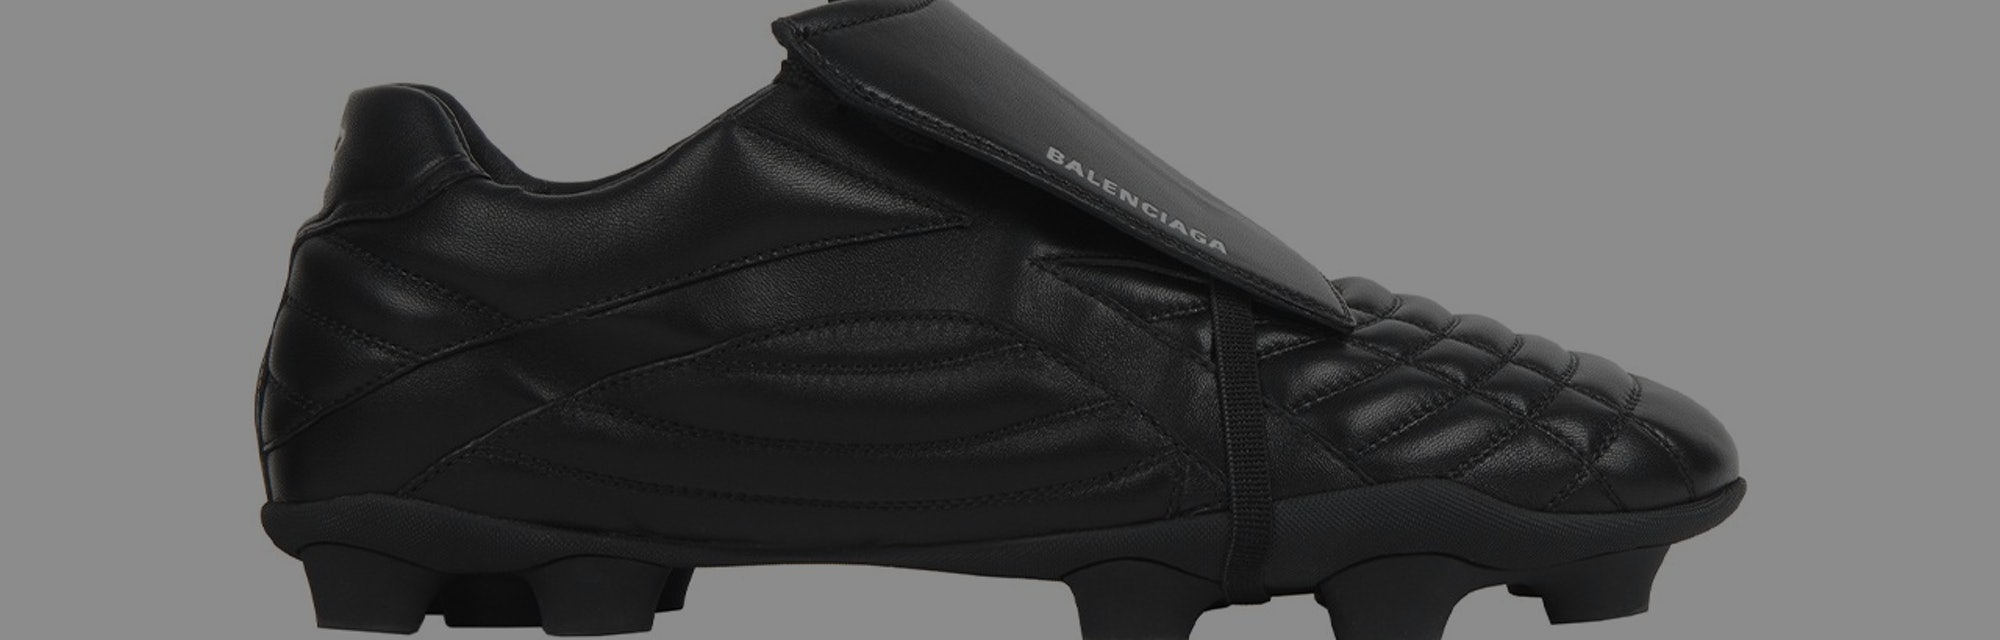 Balenciaga Soccer Cleat